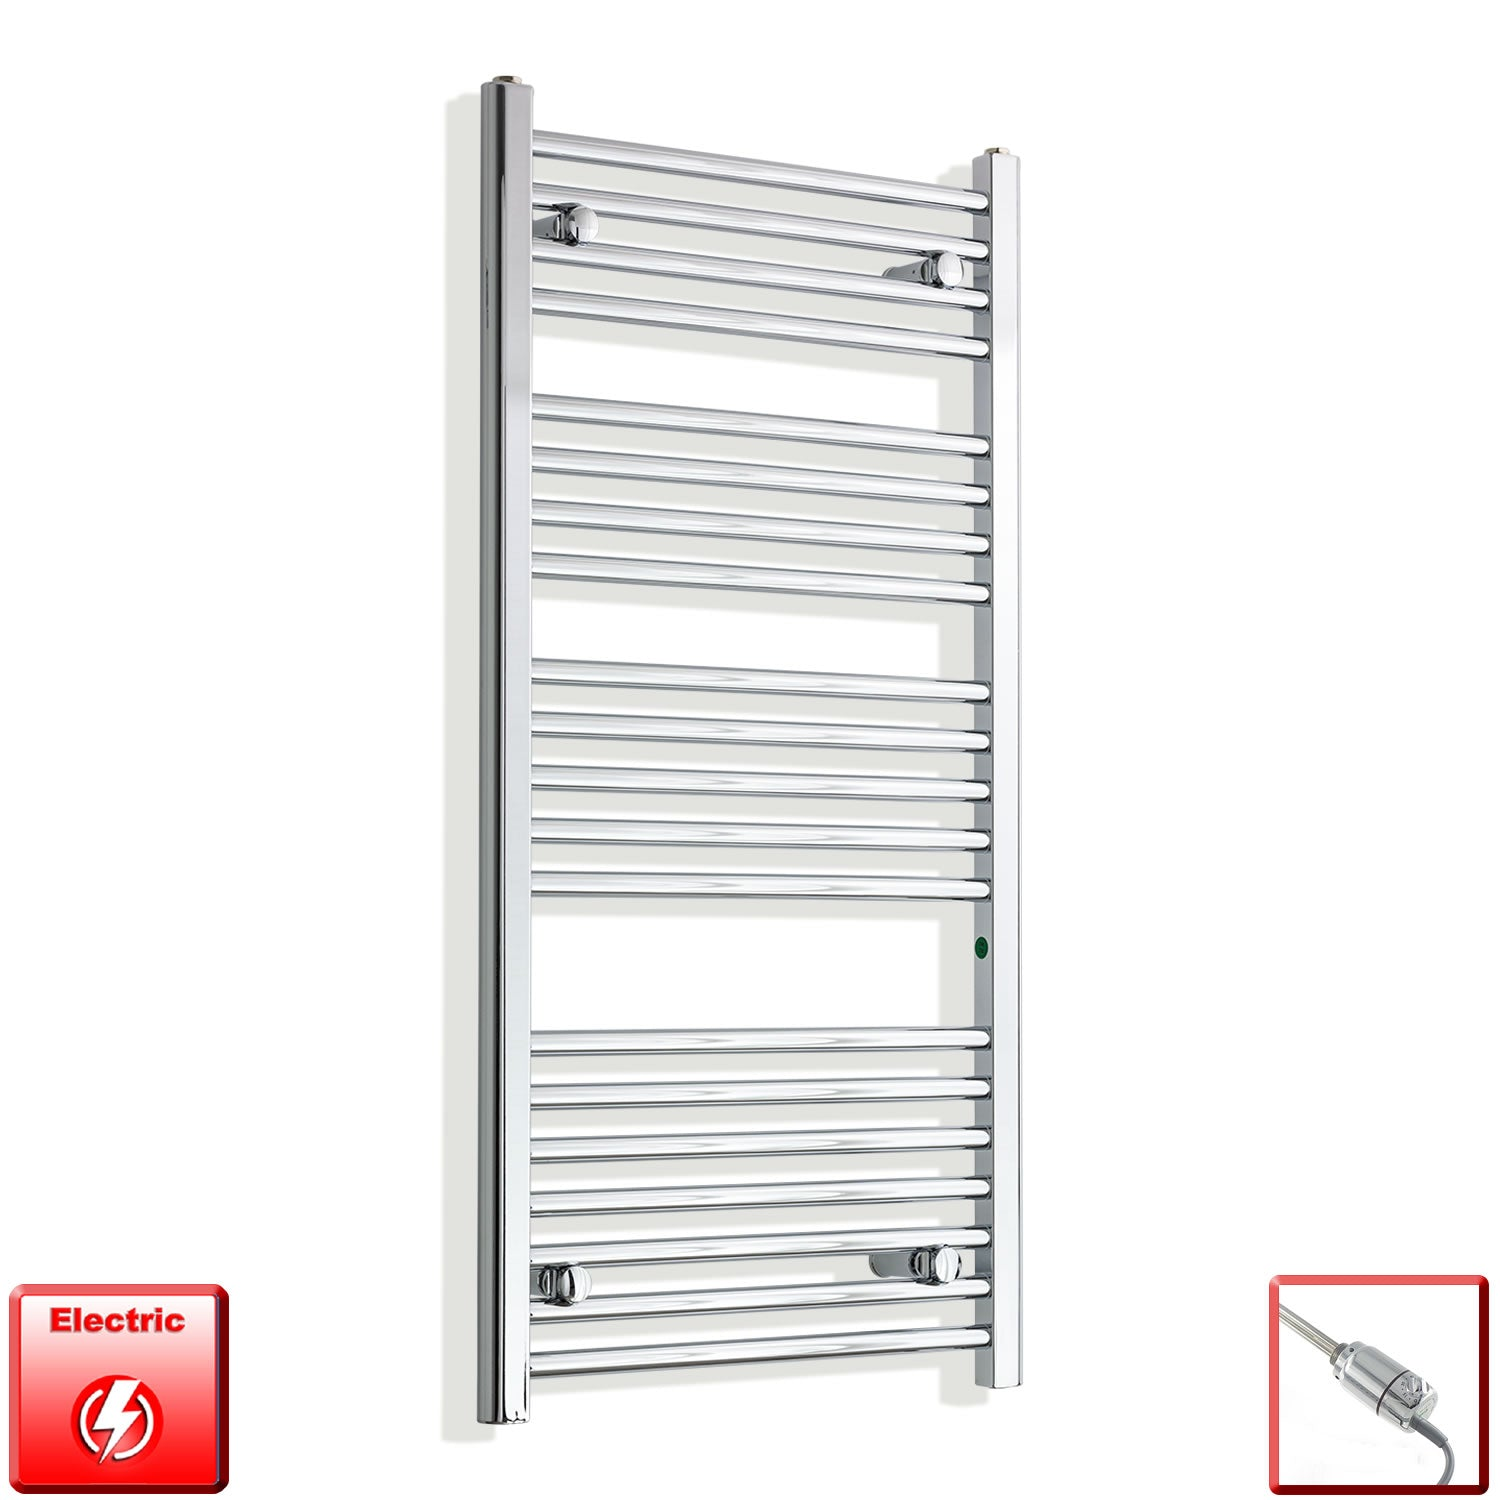 550mm Wide 1100mm High Pre-Filled Chrome Electric Towel Rail Radiator With Thermostatic GT Element